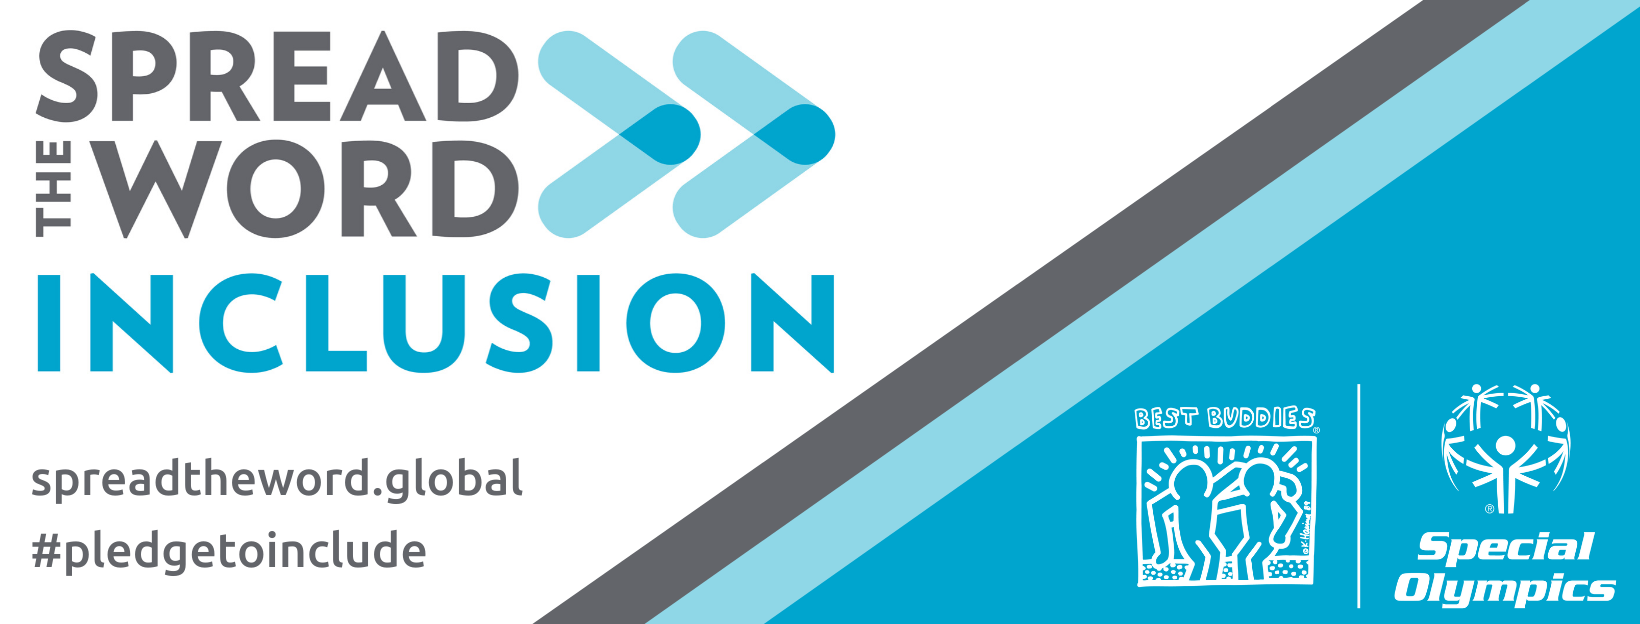 Spread the Word: Inclusion campaign banner